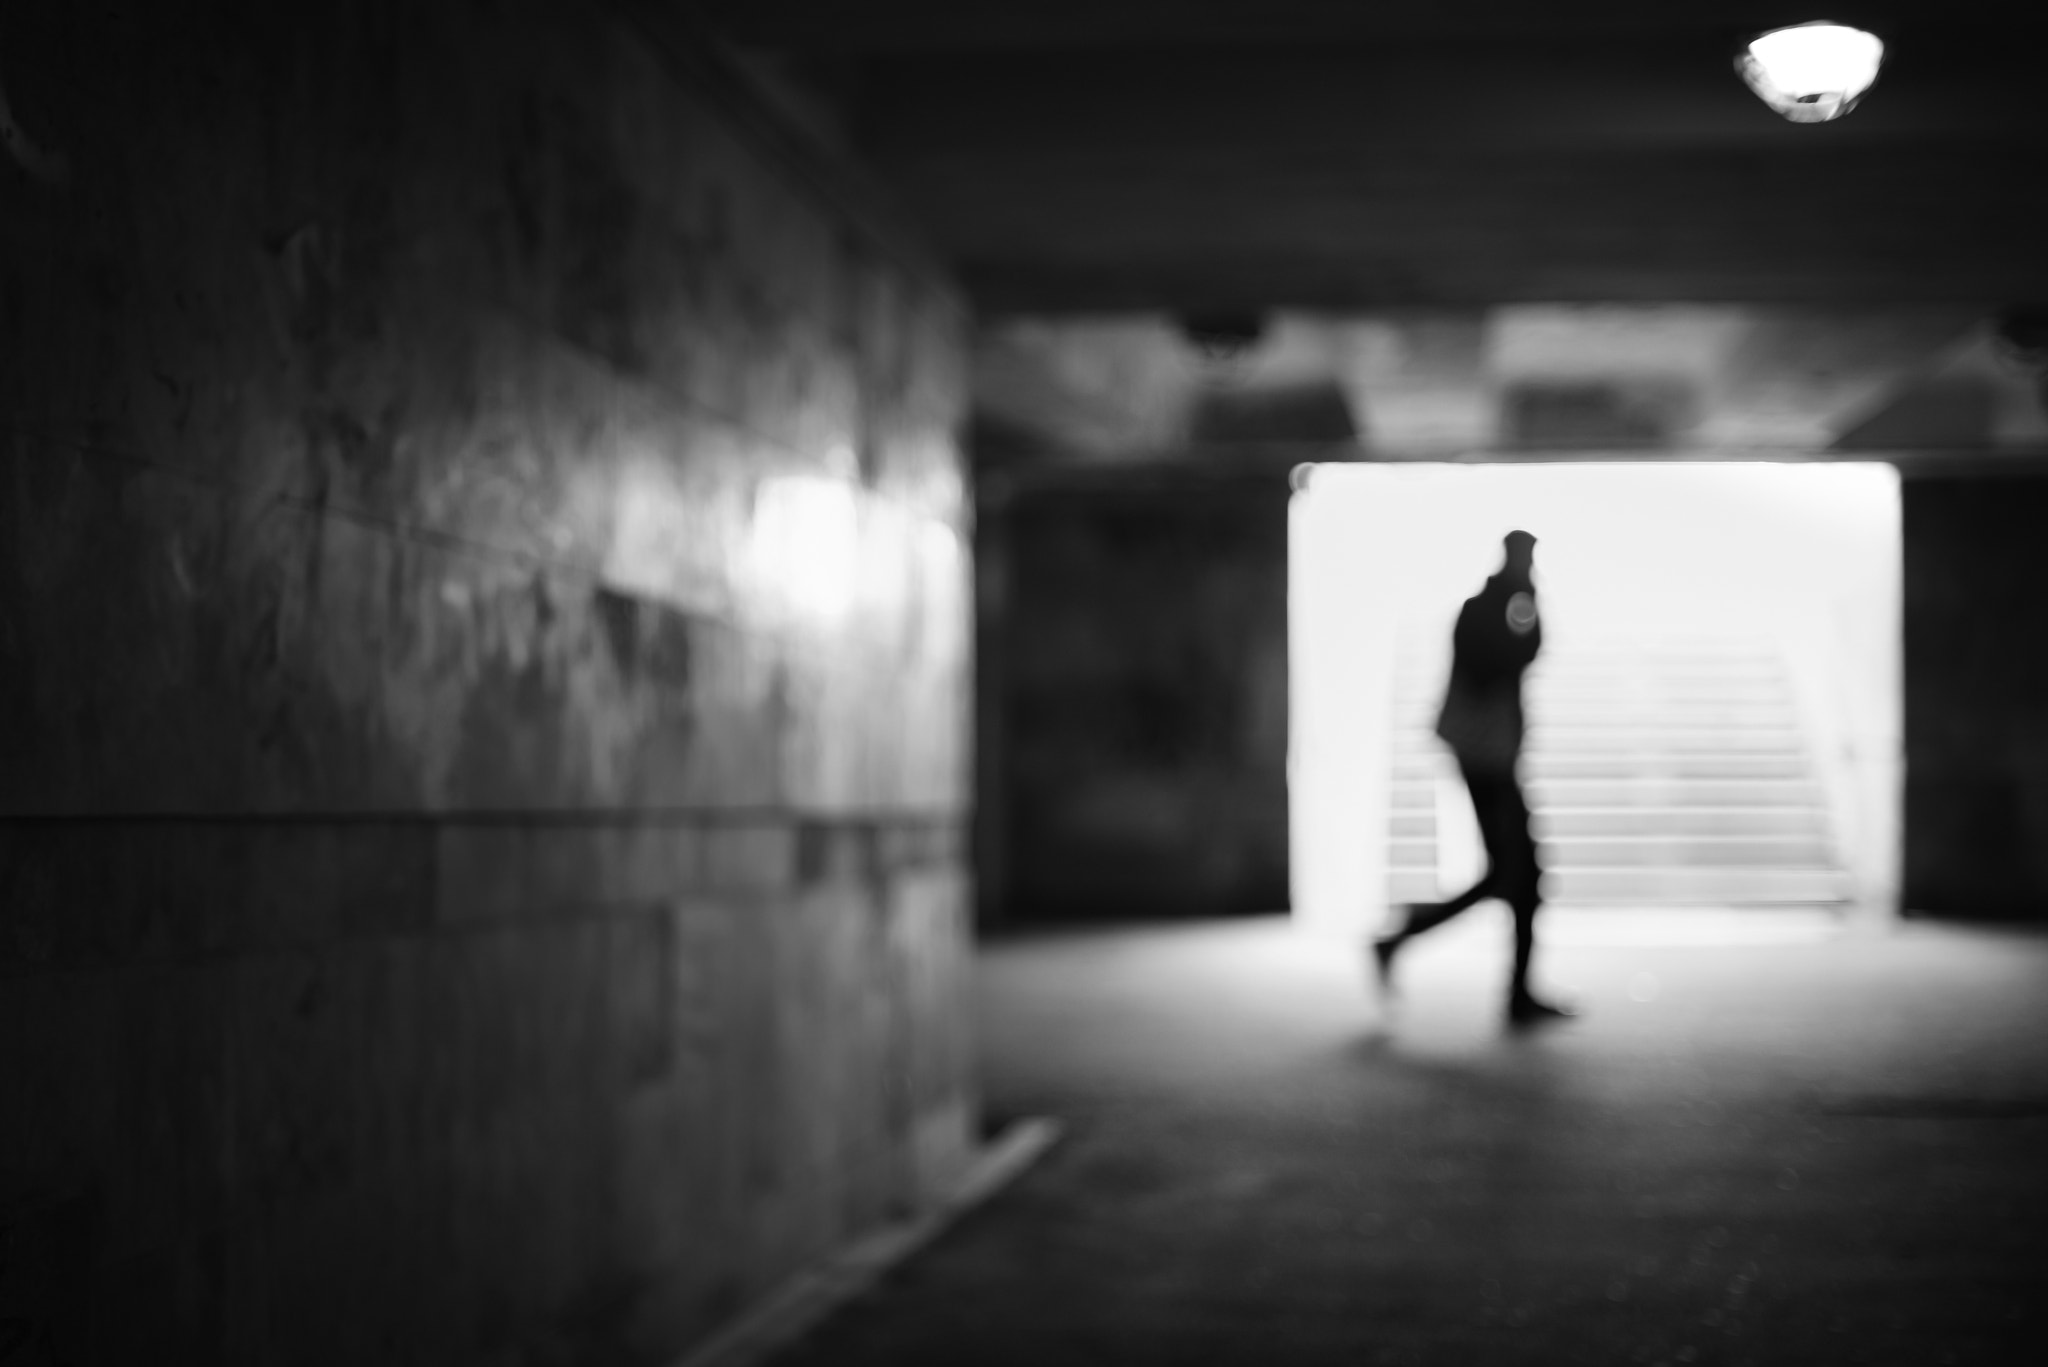 Photograph Underground Silhouette by Emil Edilersky on 500px